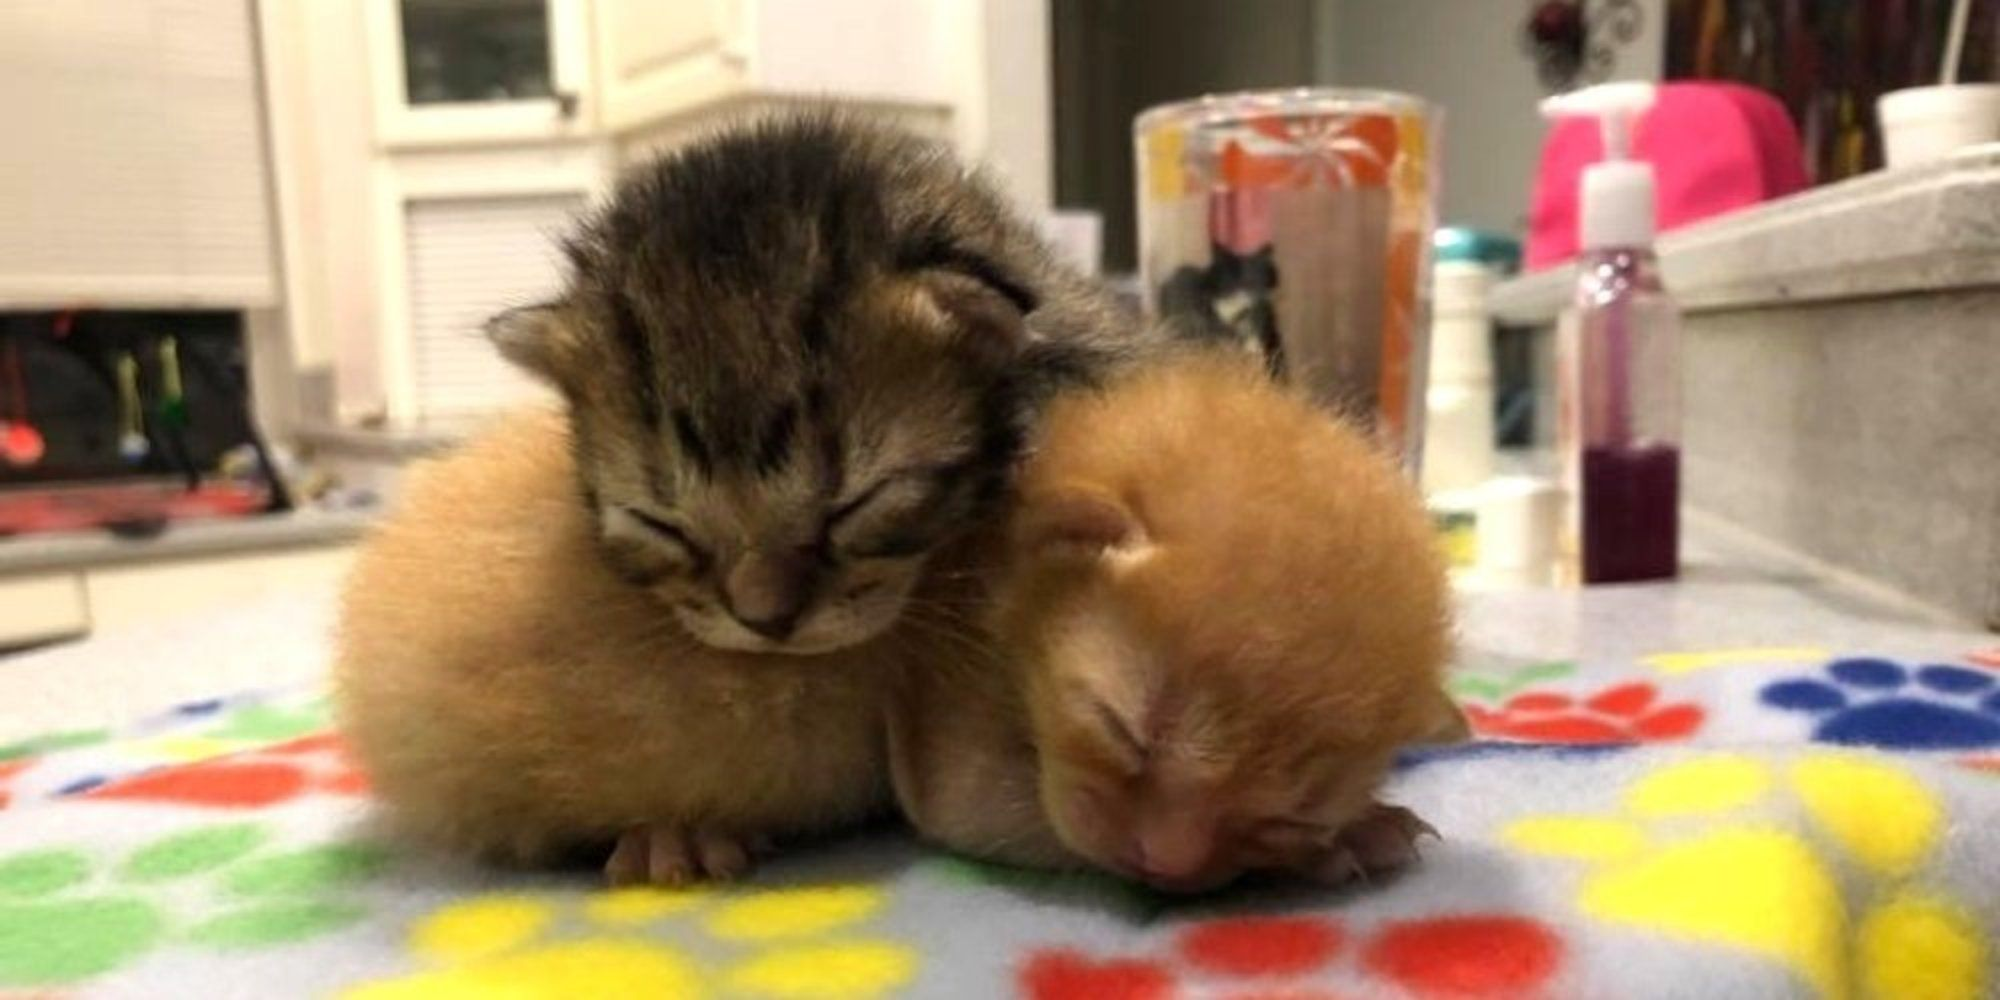 Two One Week Old Kittens Were Found Huddled Up In A Truck In A Neighborhood Of Sarasota Florida After Hours Of Waiting For Their M Kittens Cat Care Pets Cats